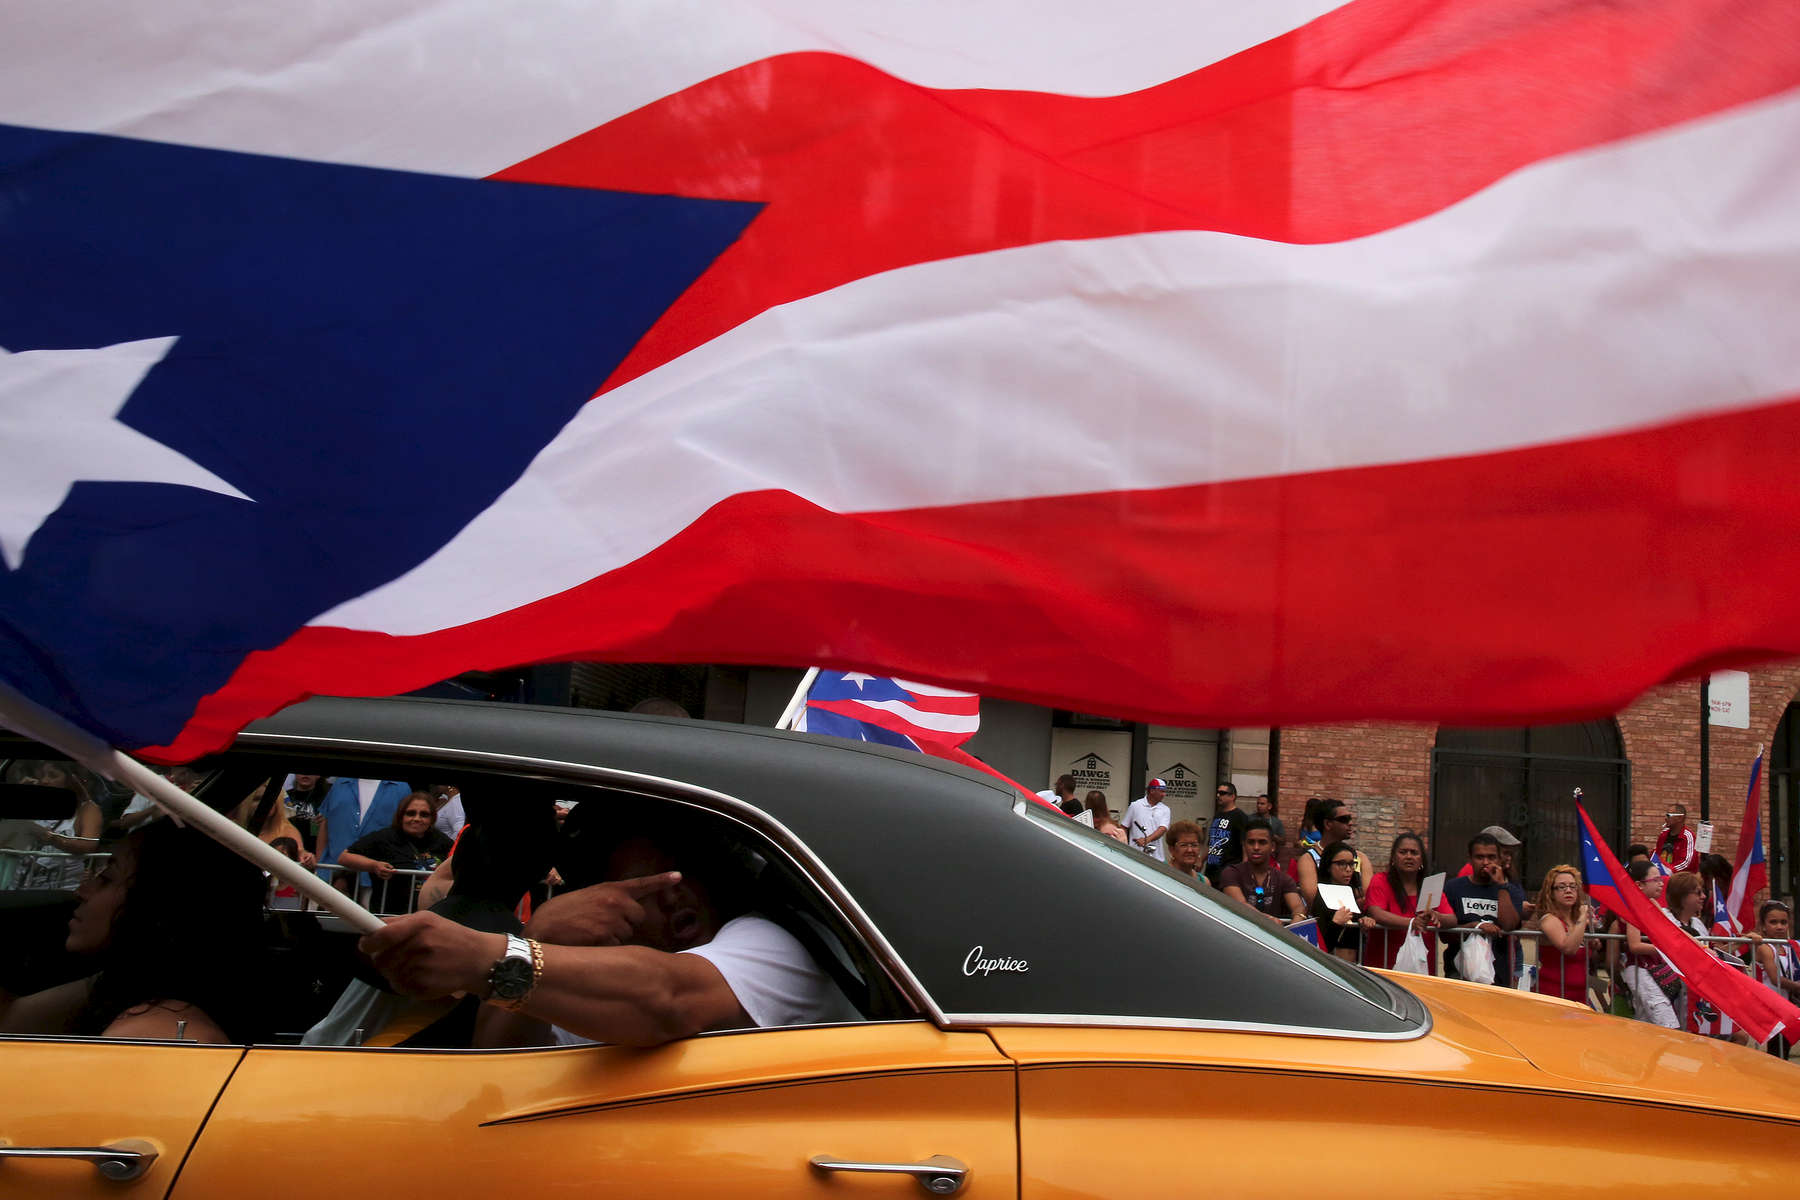 A man waves a flag along the parade route during the annual Puerto Rican People's Parade on West Division Street in Chicago.